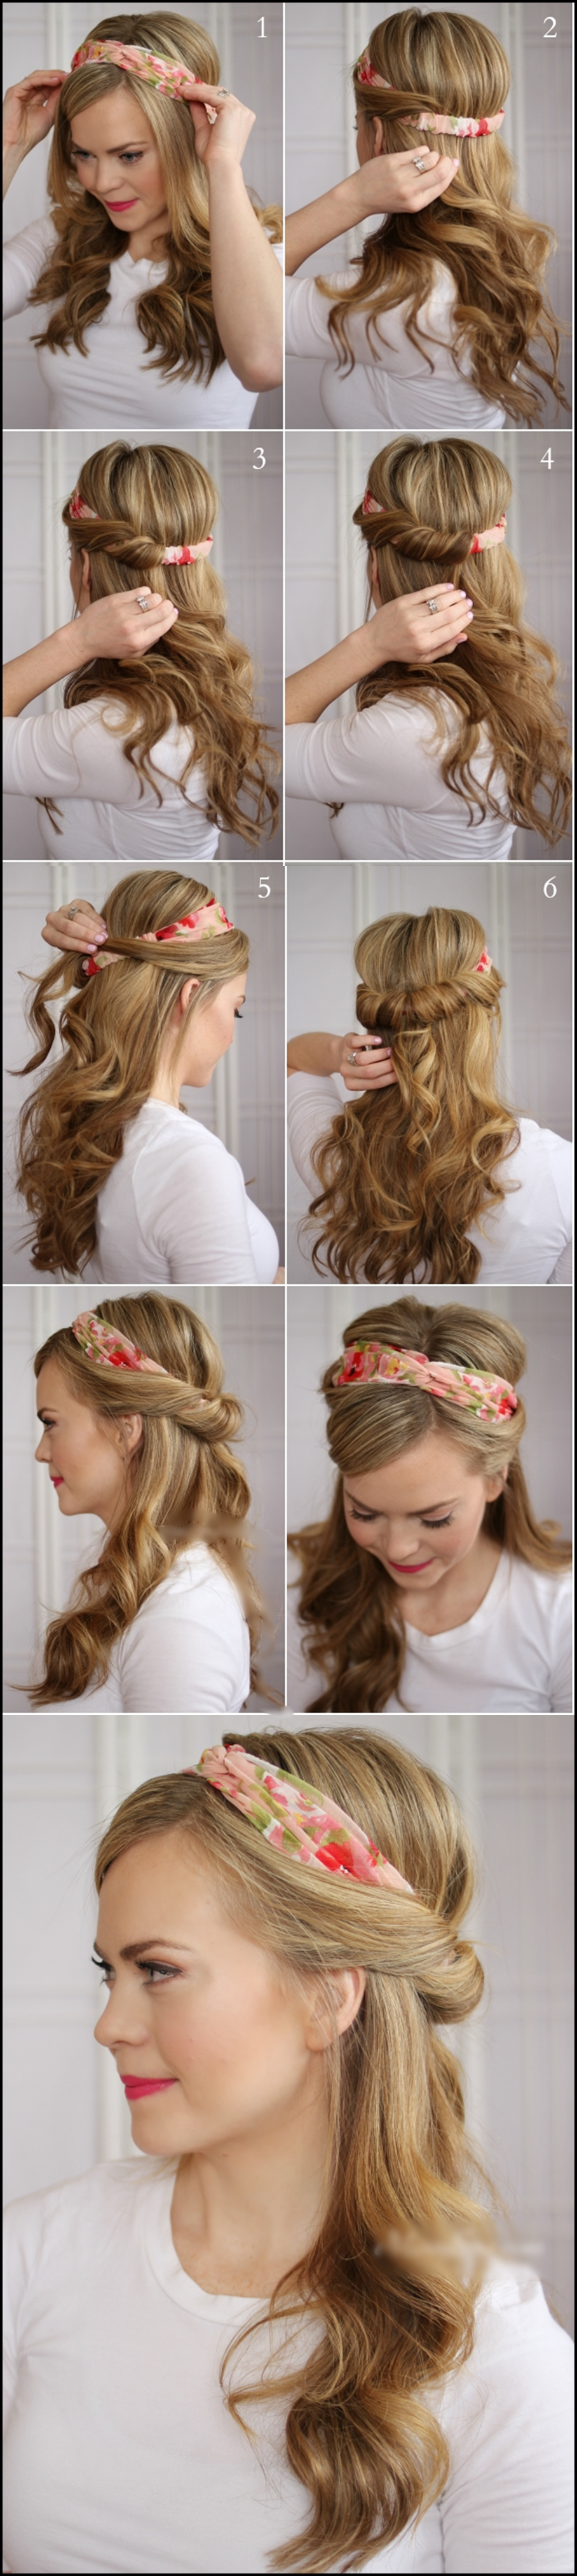 Tuck and Cover Half m Wonderful DIY Tuck and Cover Half hairstyle